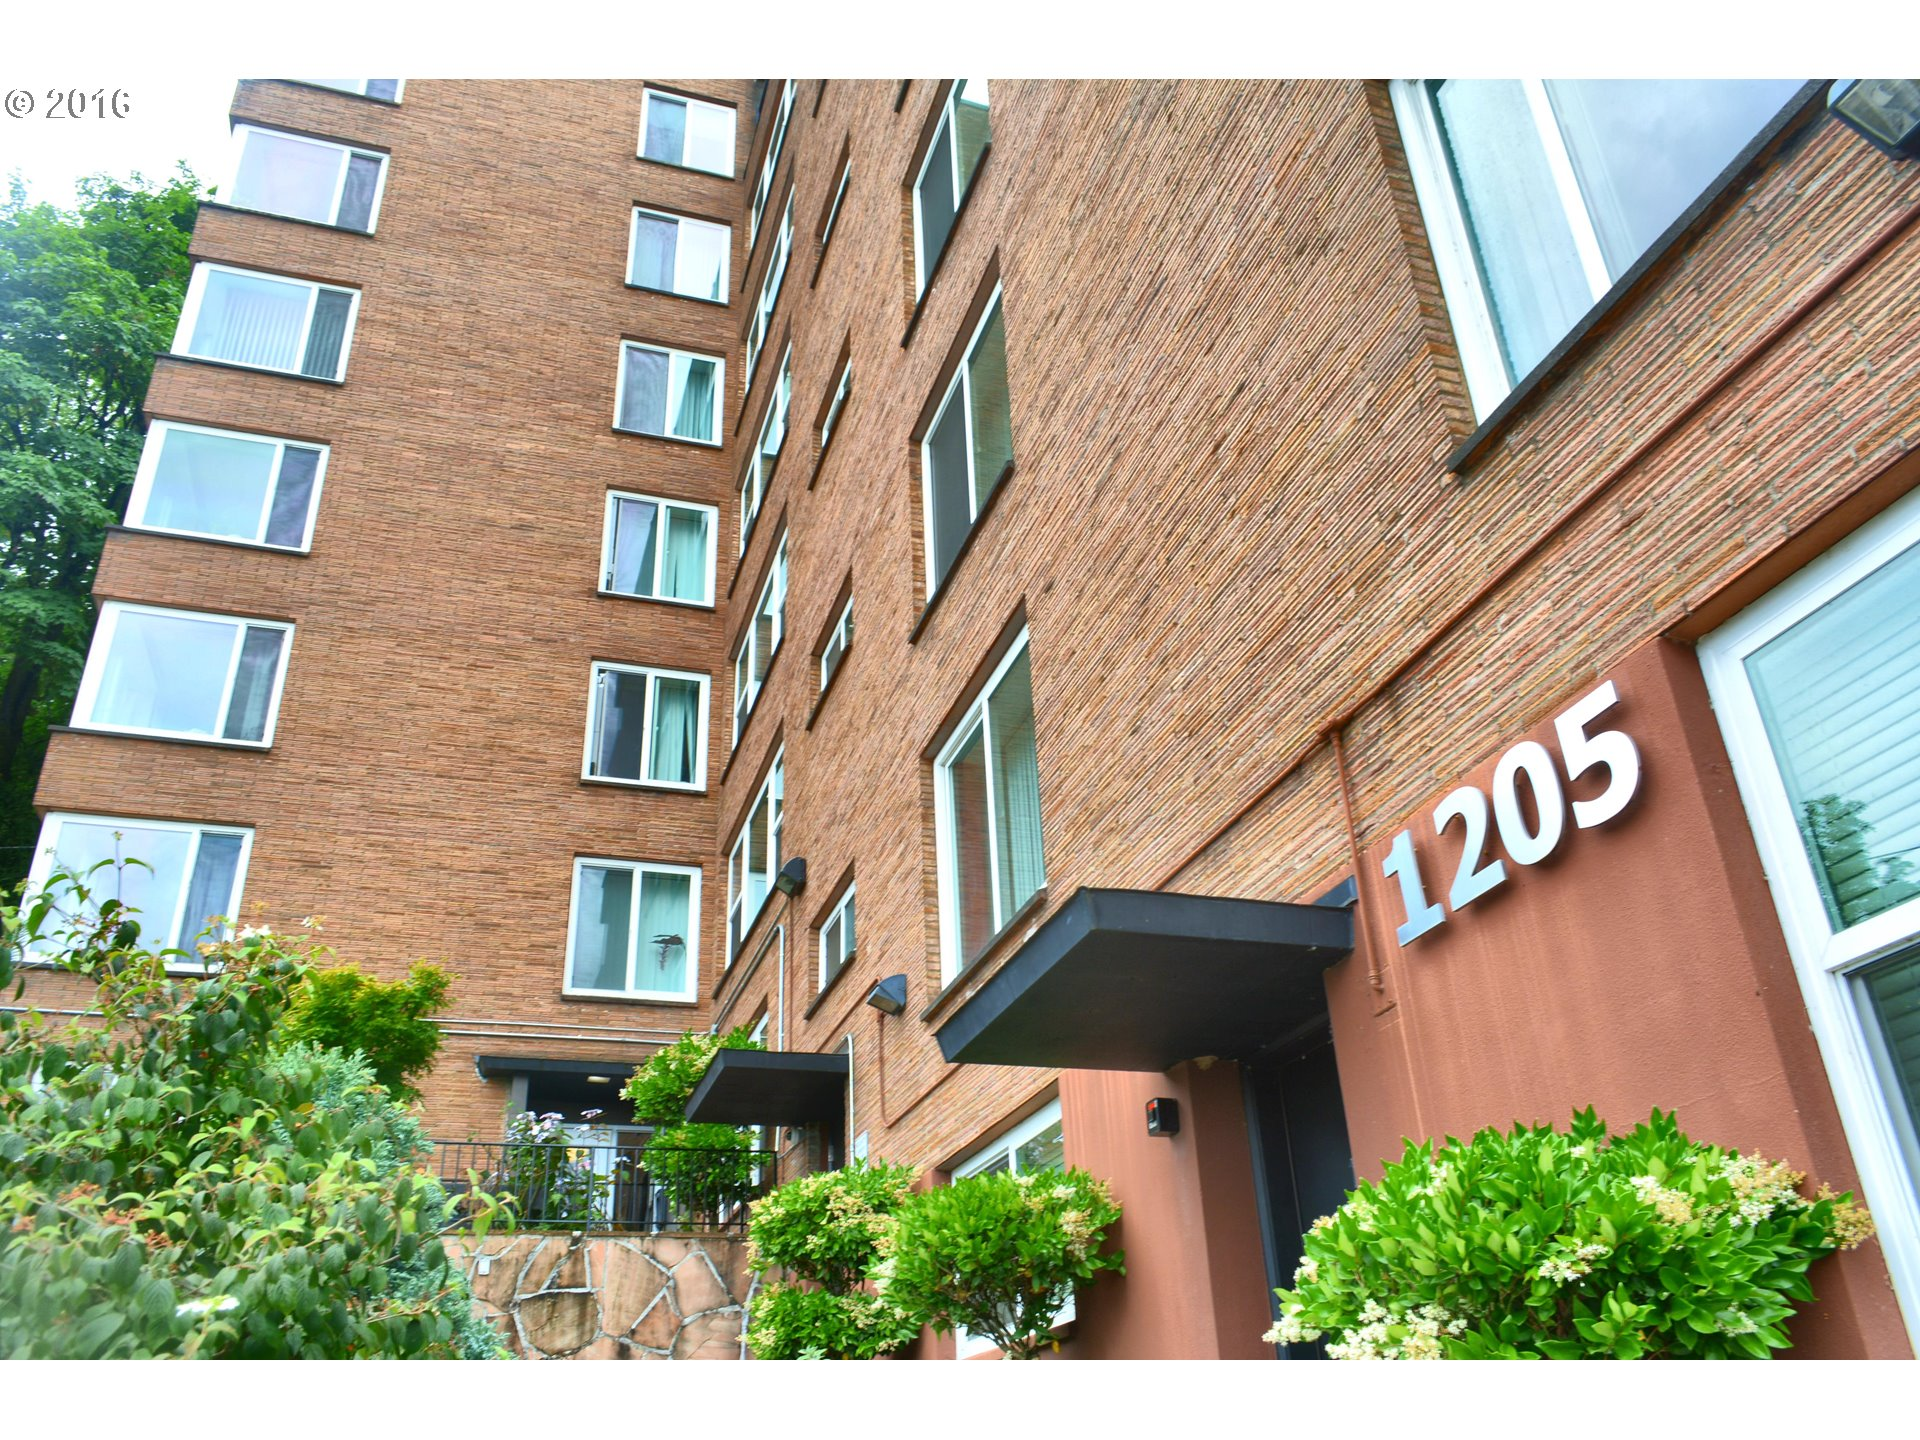 1205 SW CARDINELL DR 304, Portland, OR 97201